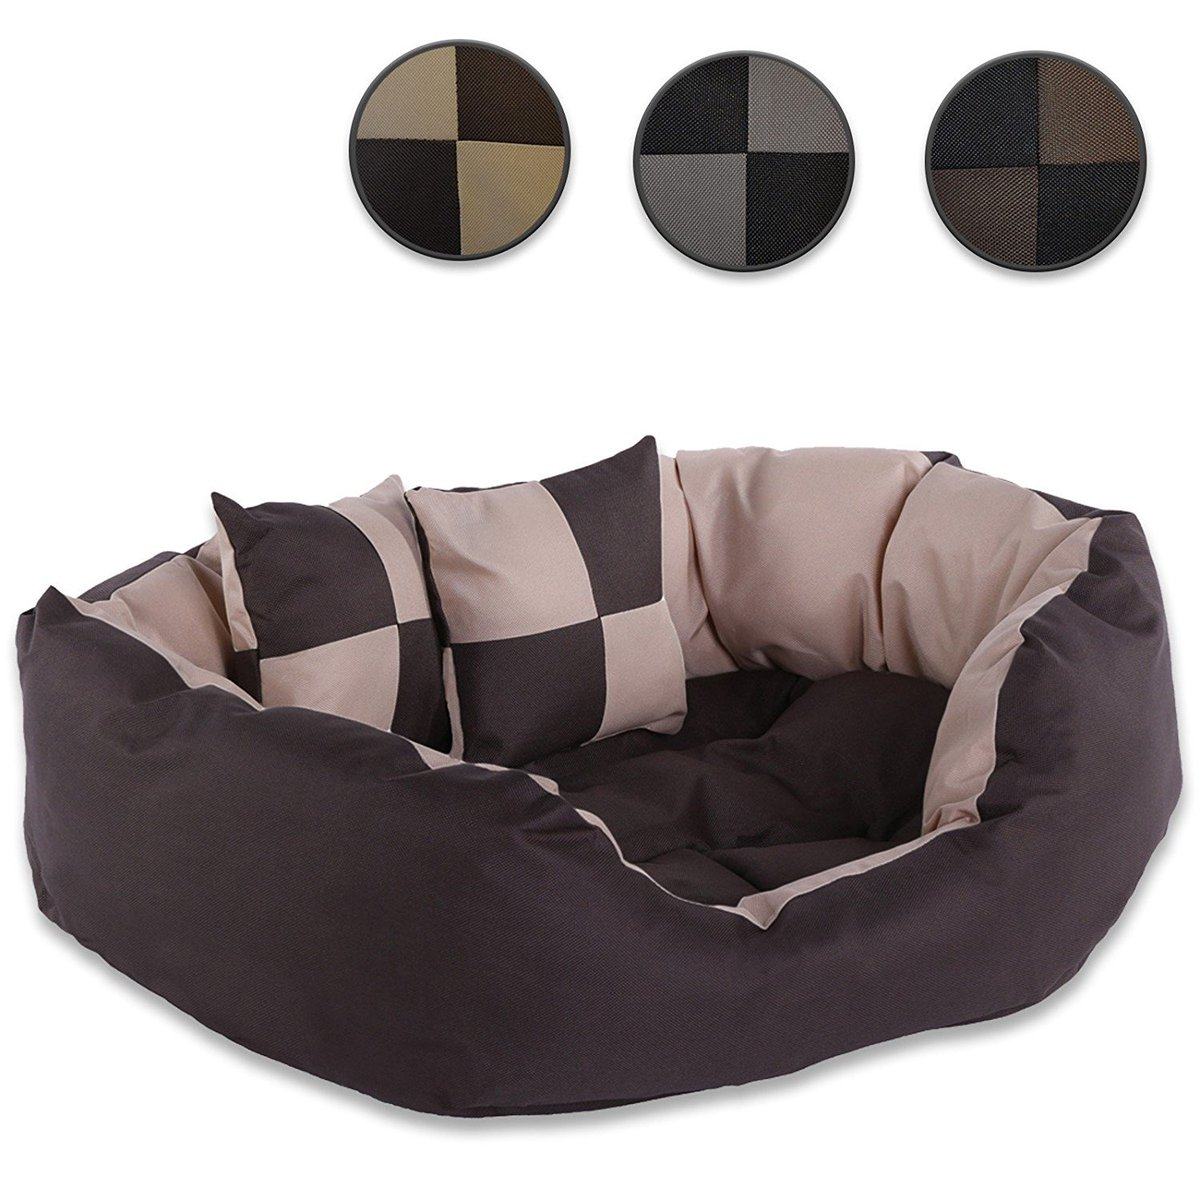 Hundebett Amazon Hundesofa Hashtag On Twitter